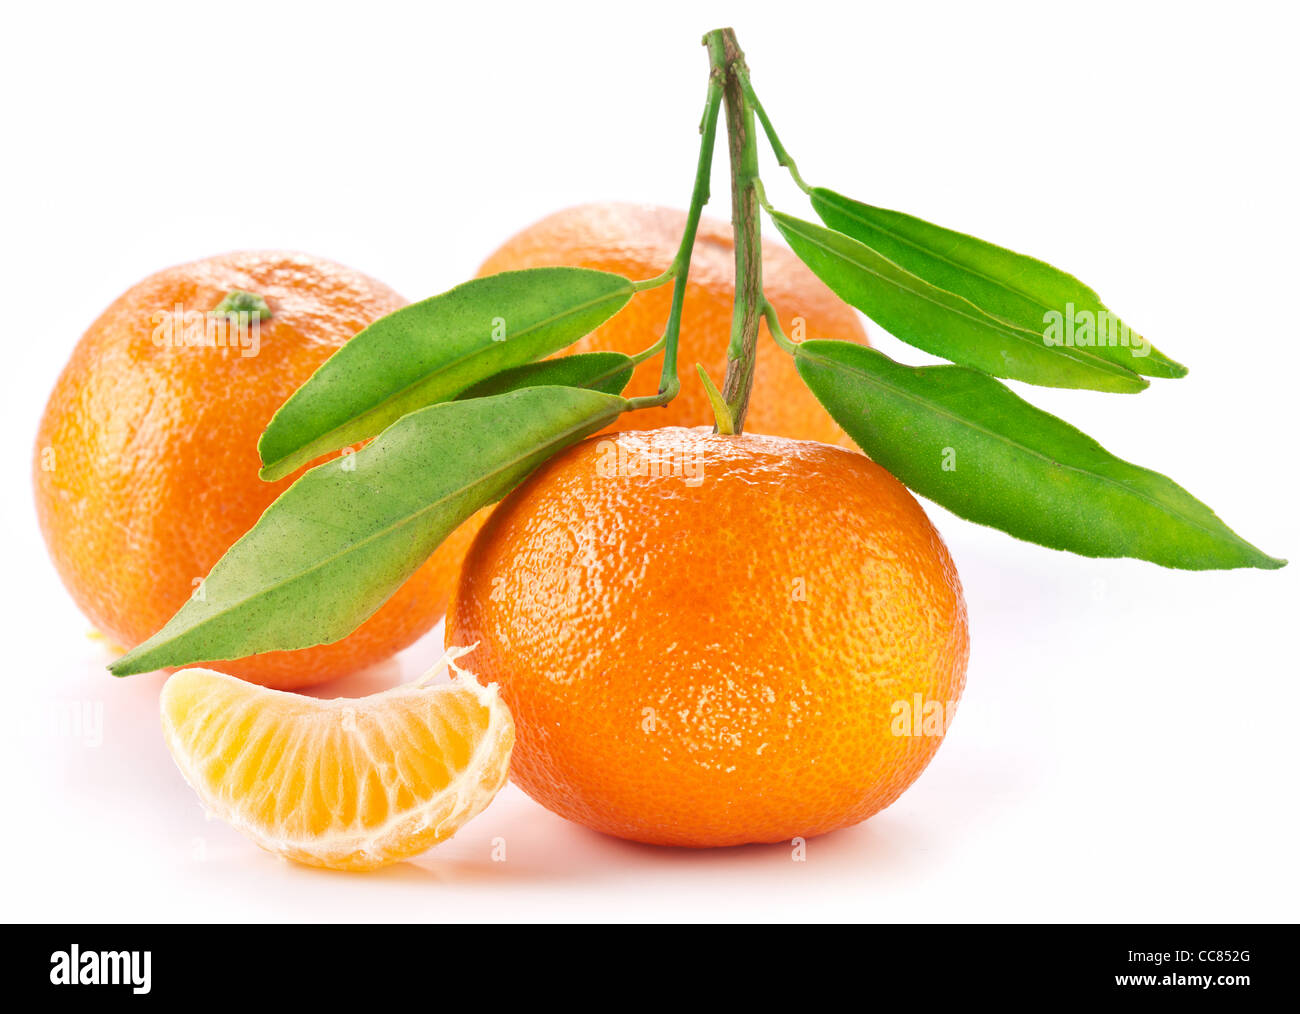 Tangerines with leaves on white background. - Stock Image